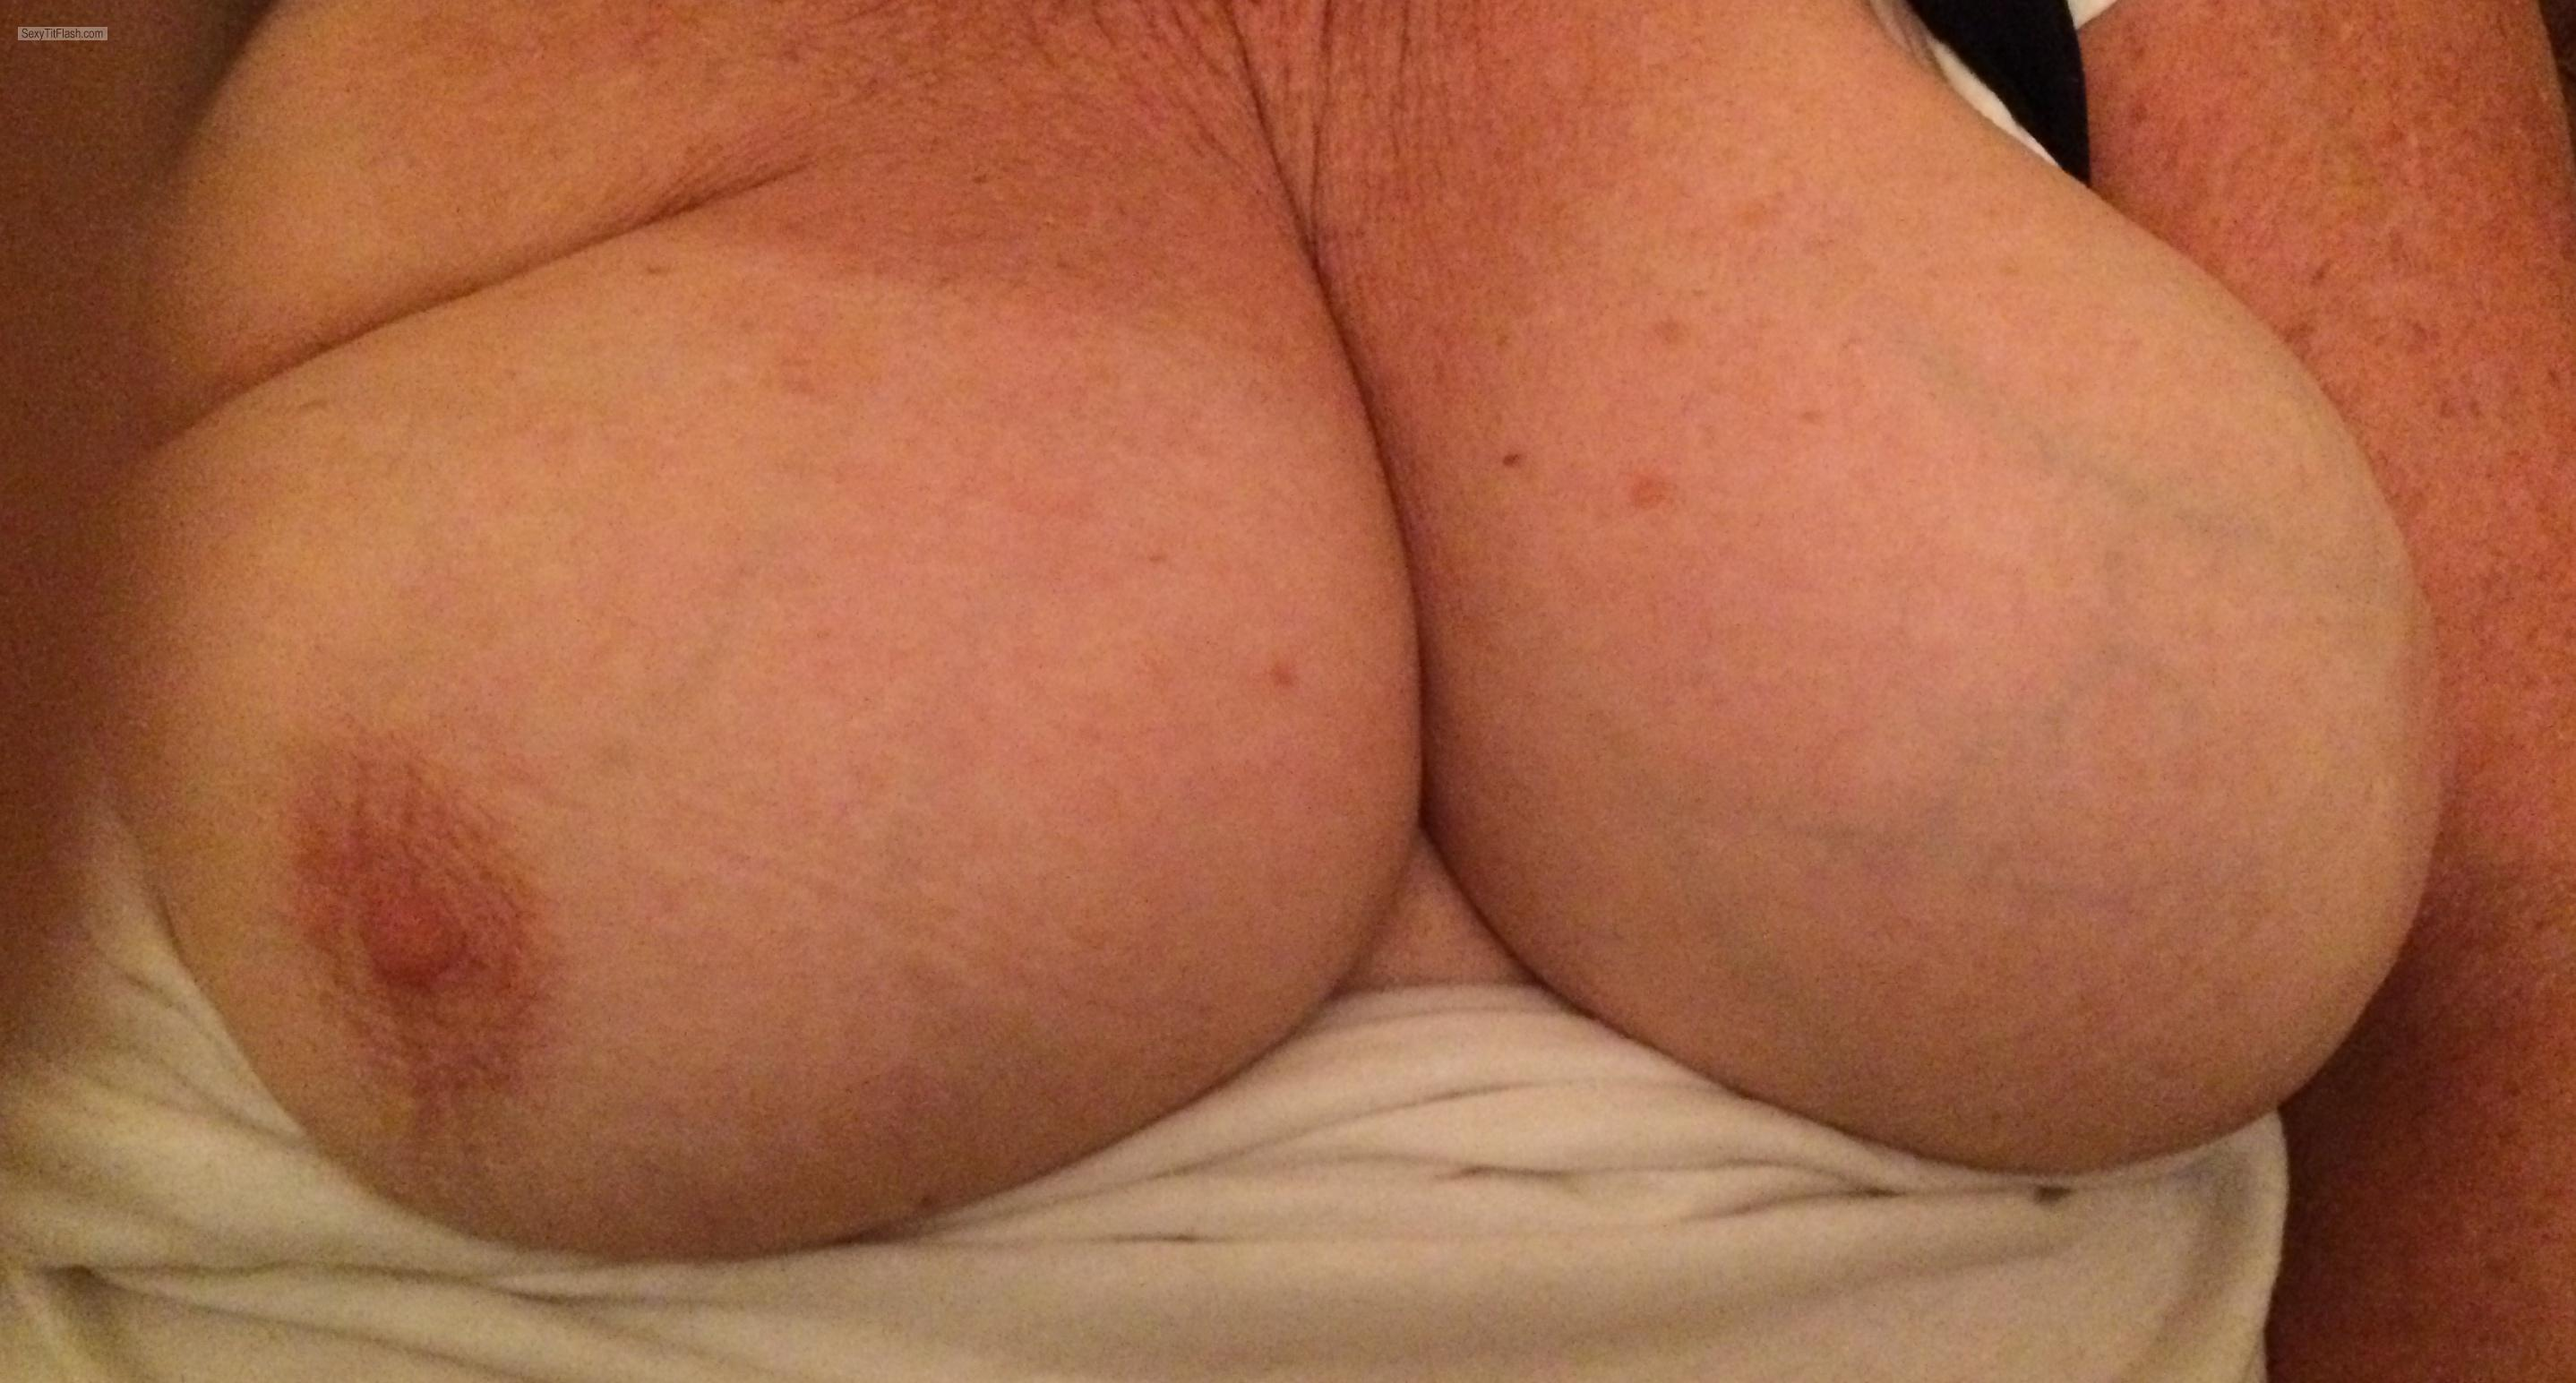 Tit Flash: Room Mate's Tanlined Big Tits - Sexy M from United Kingdom